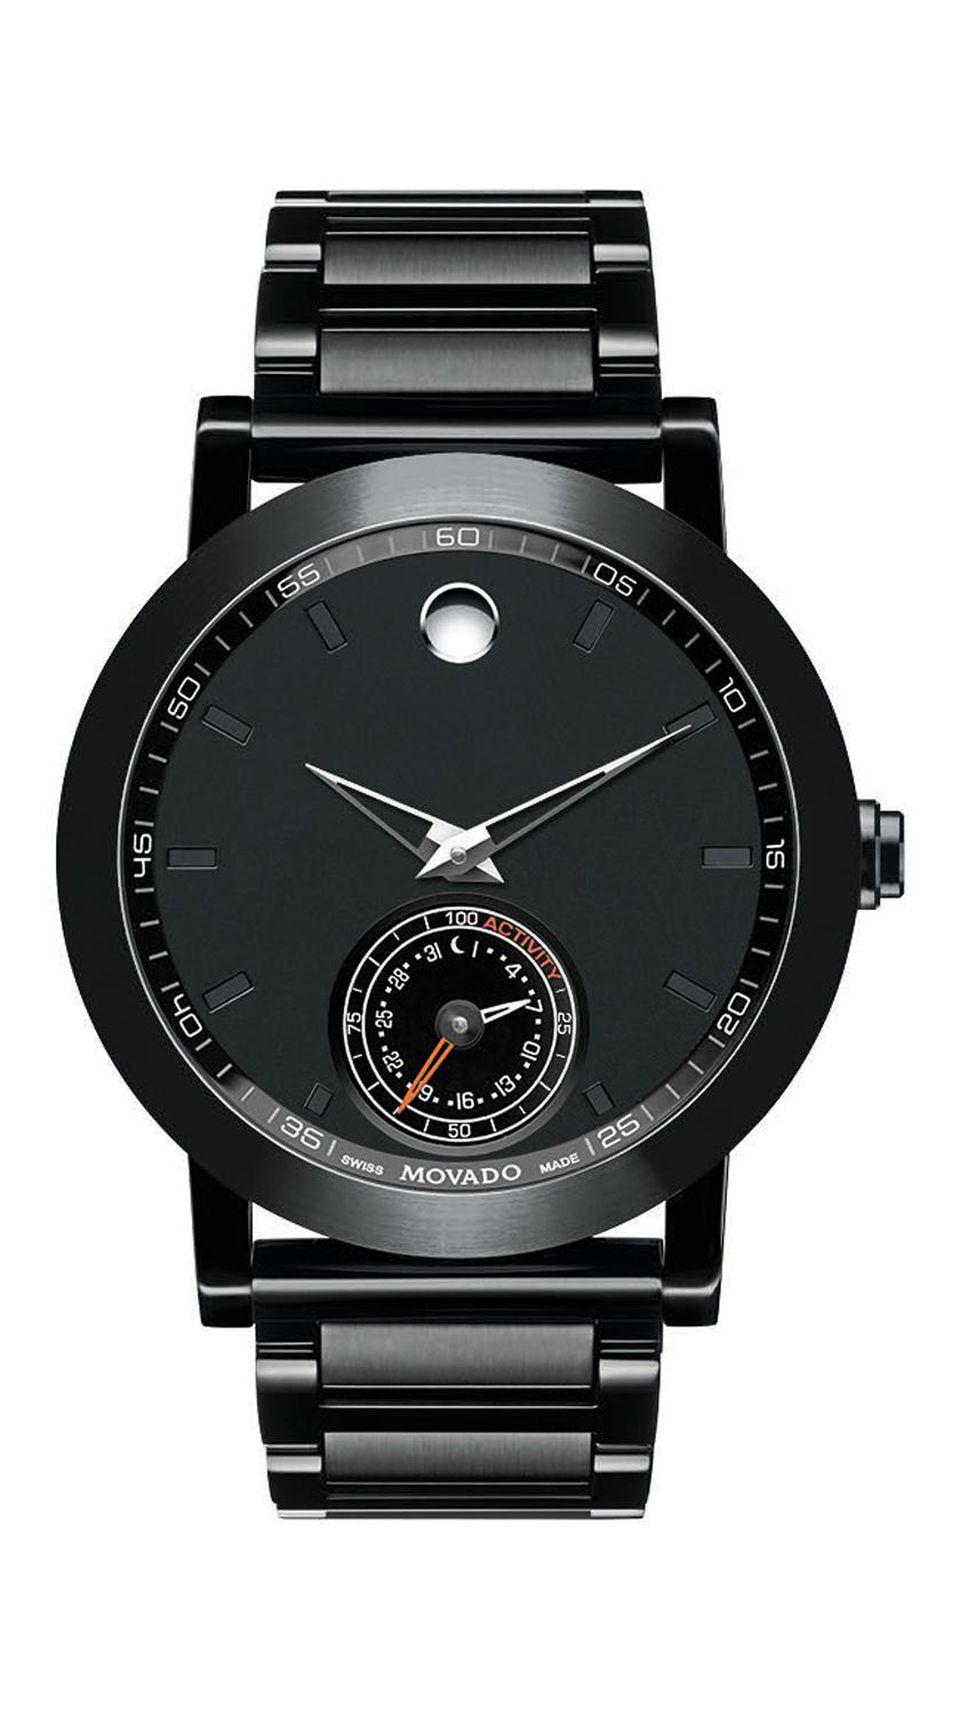 Movado Connected watch